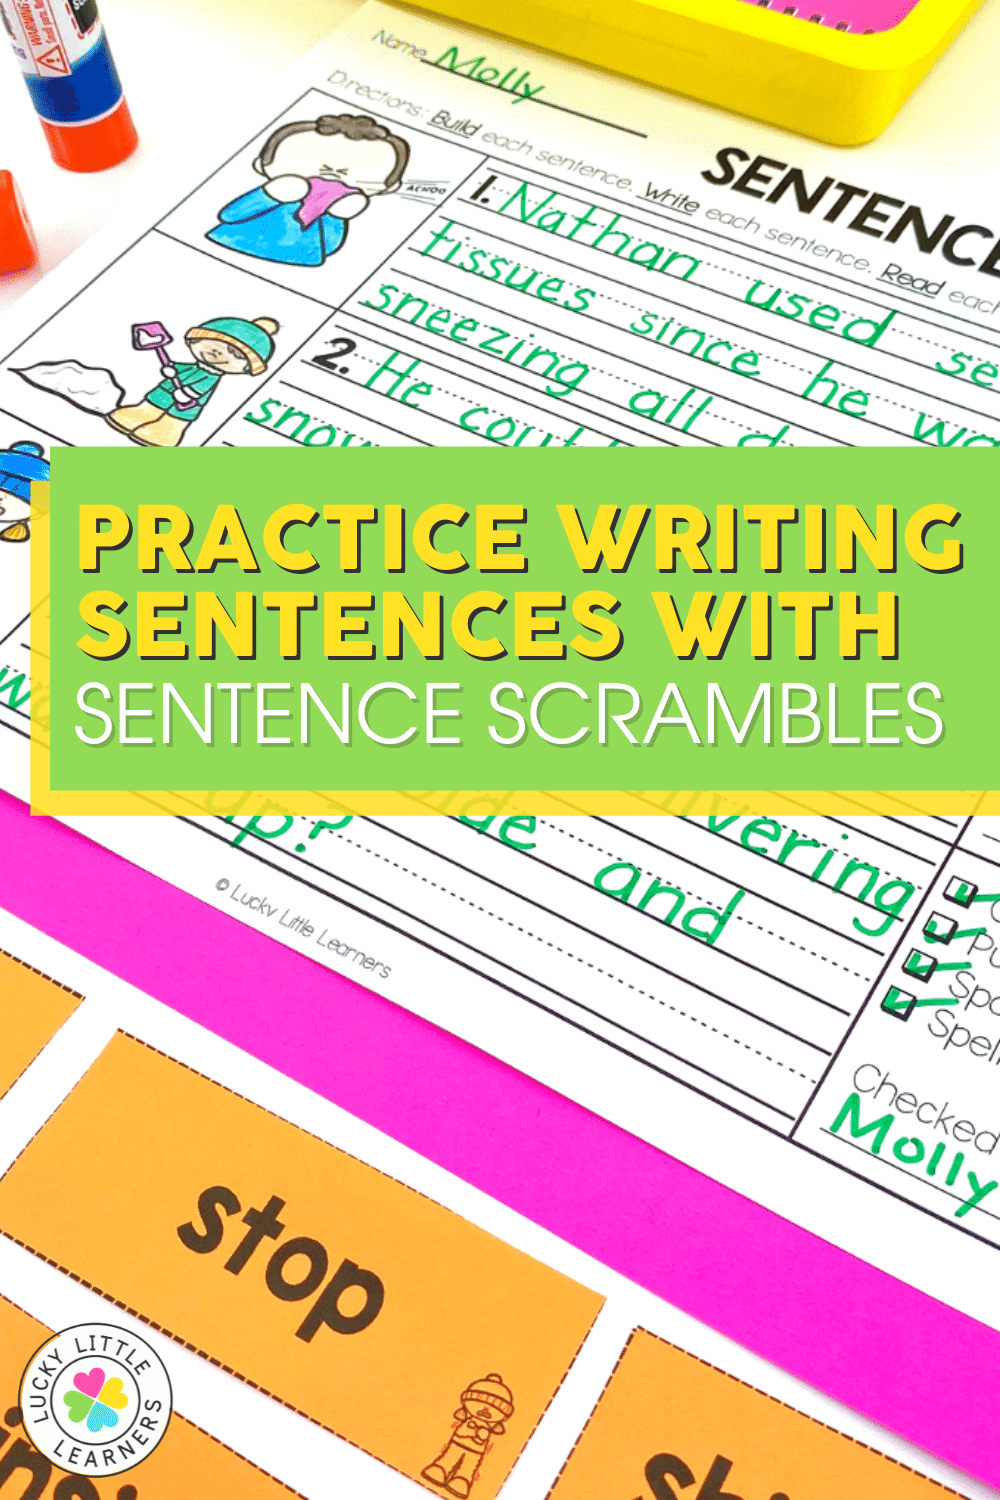 sentence scrambles to practice building and writing sentences